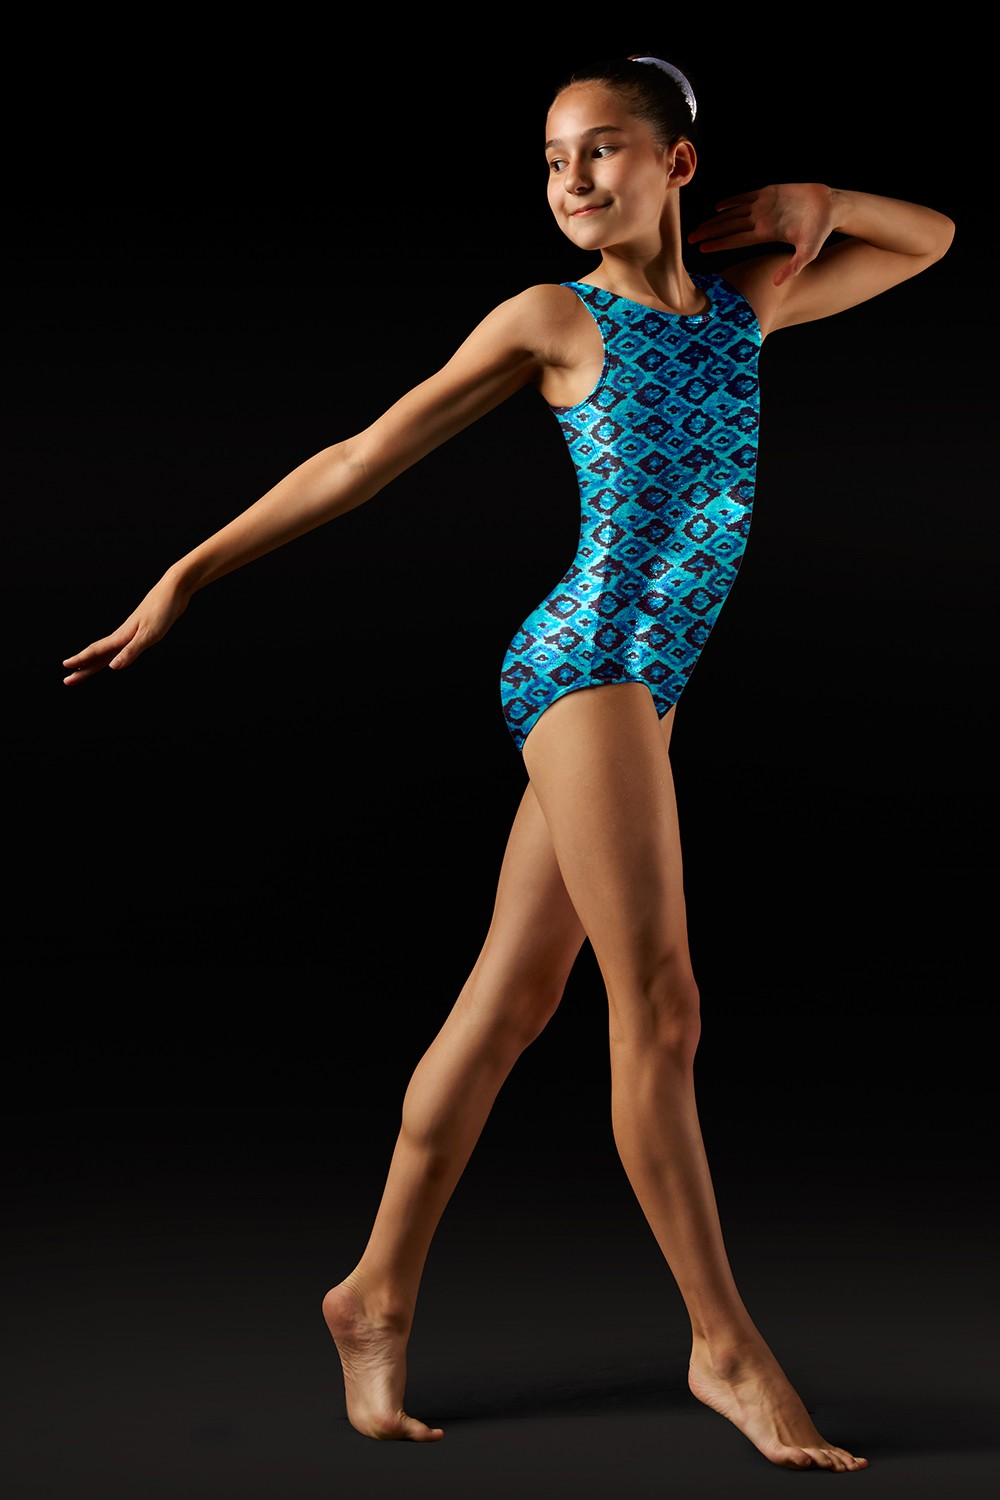 Body Con Spalline Larghe E Stampa Azteca Women's Gymnastics Leotards